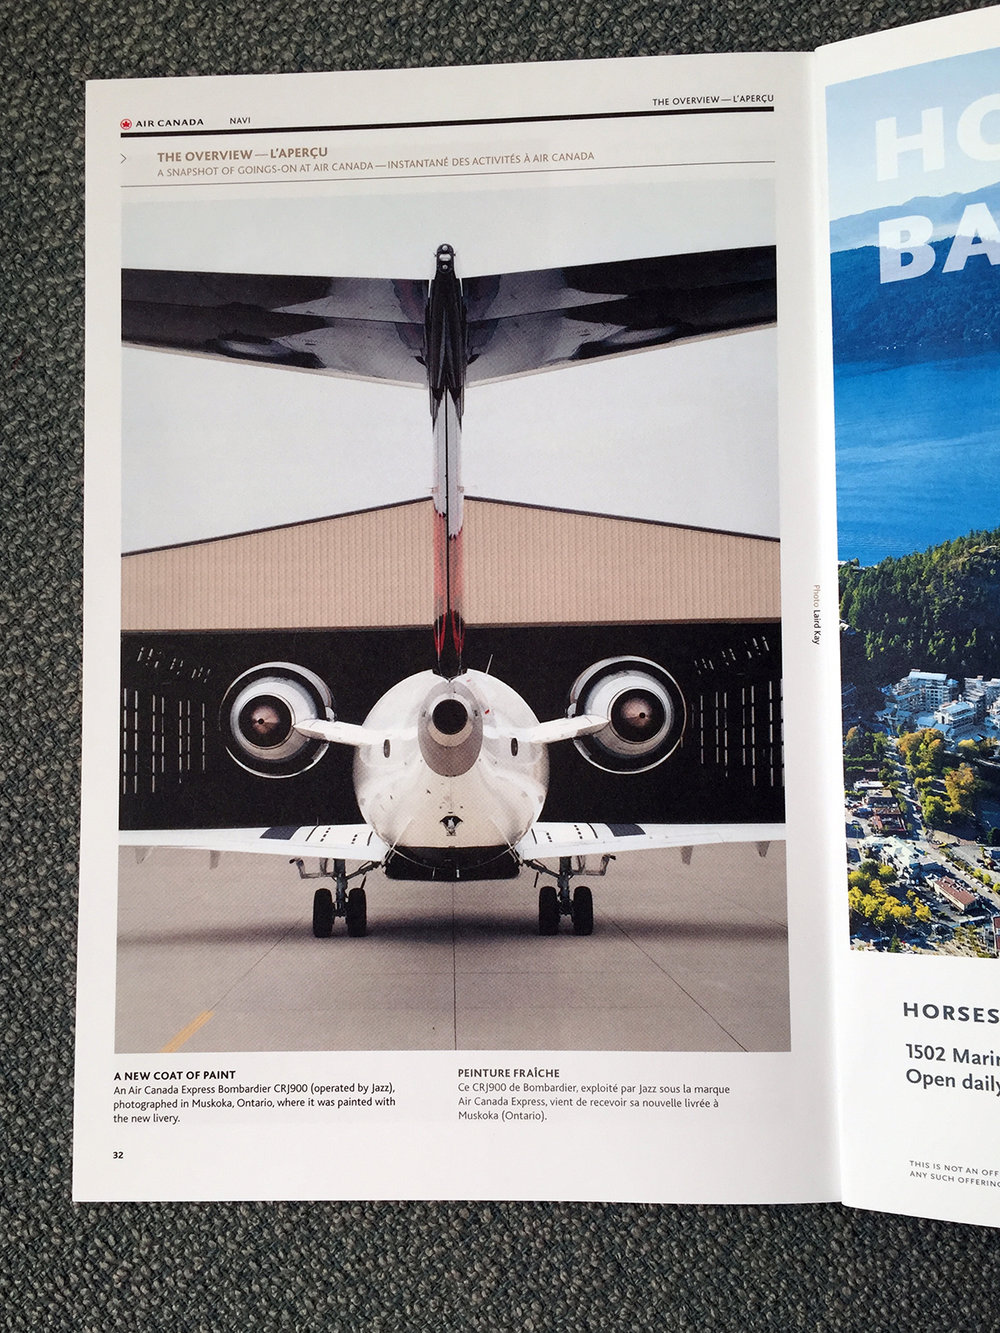 Laird Kay Navi Magazine Air Canada New Livery August 2017.jpg